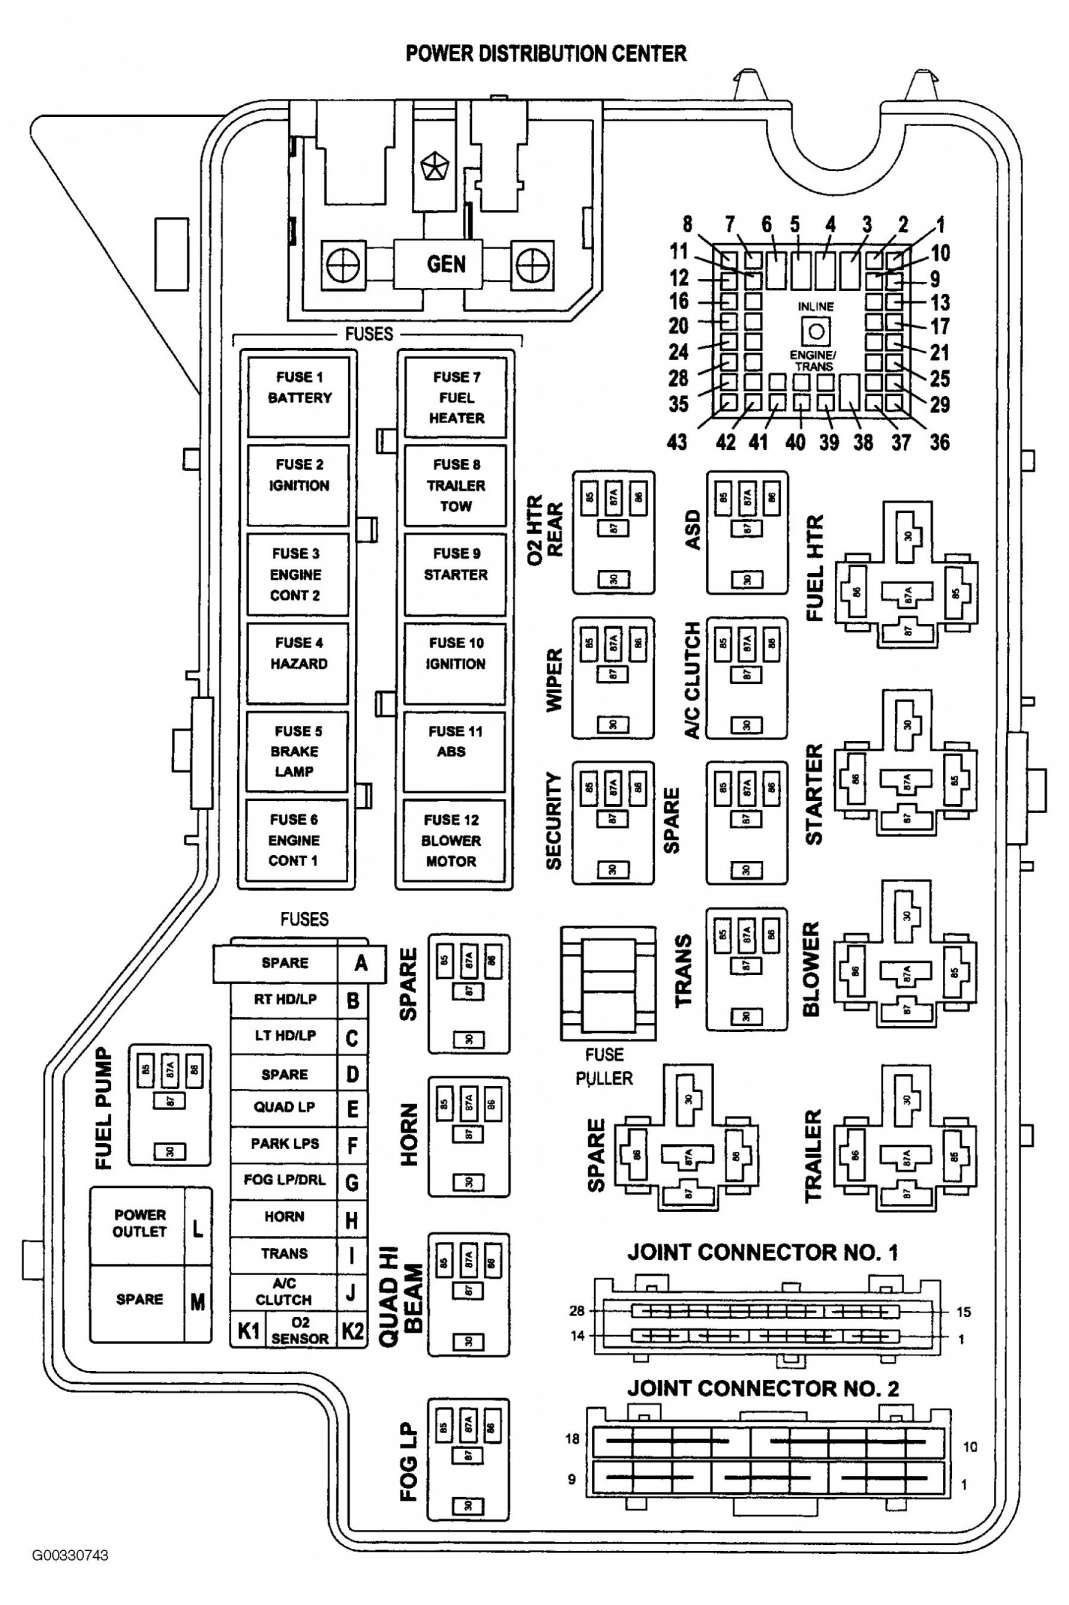 17 2002 Dodge Ram Truck Fuse Box Diagram Dodge Ram 1500 Dodge Ram Dodge Trucks Ram